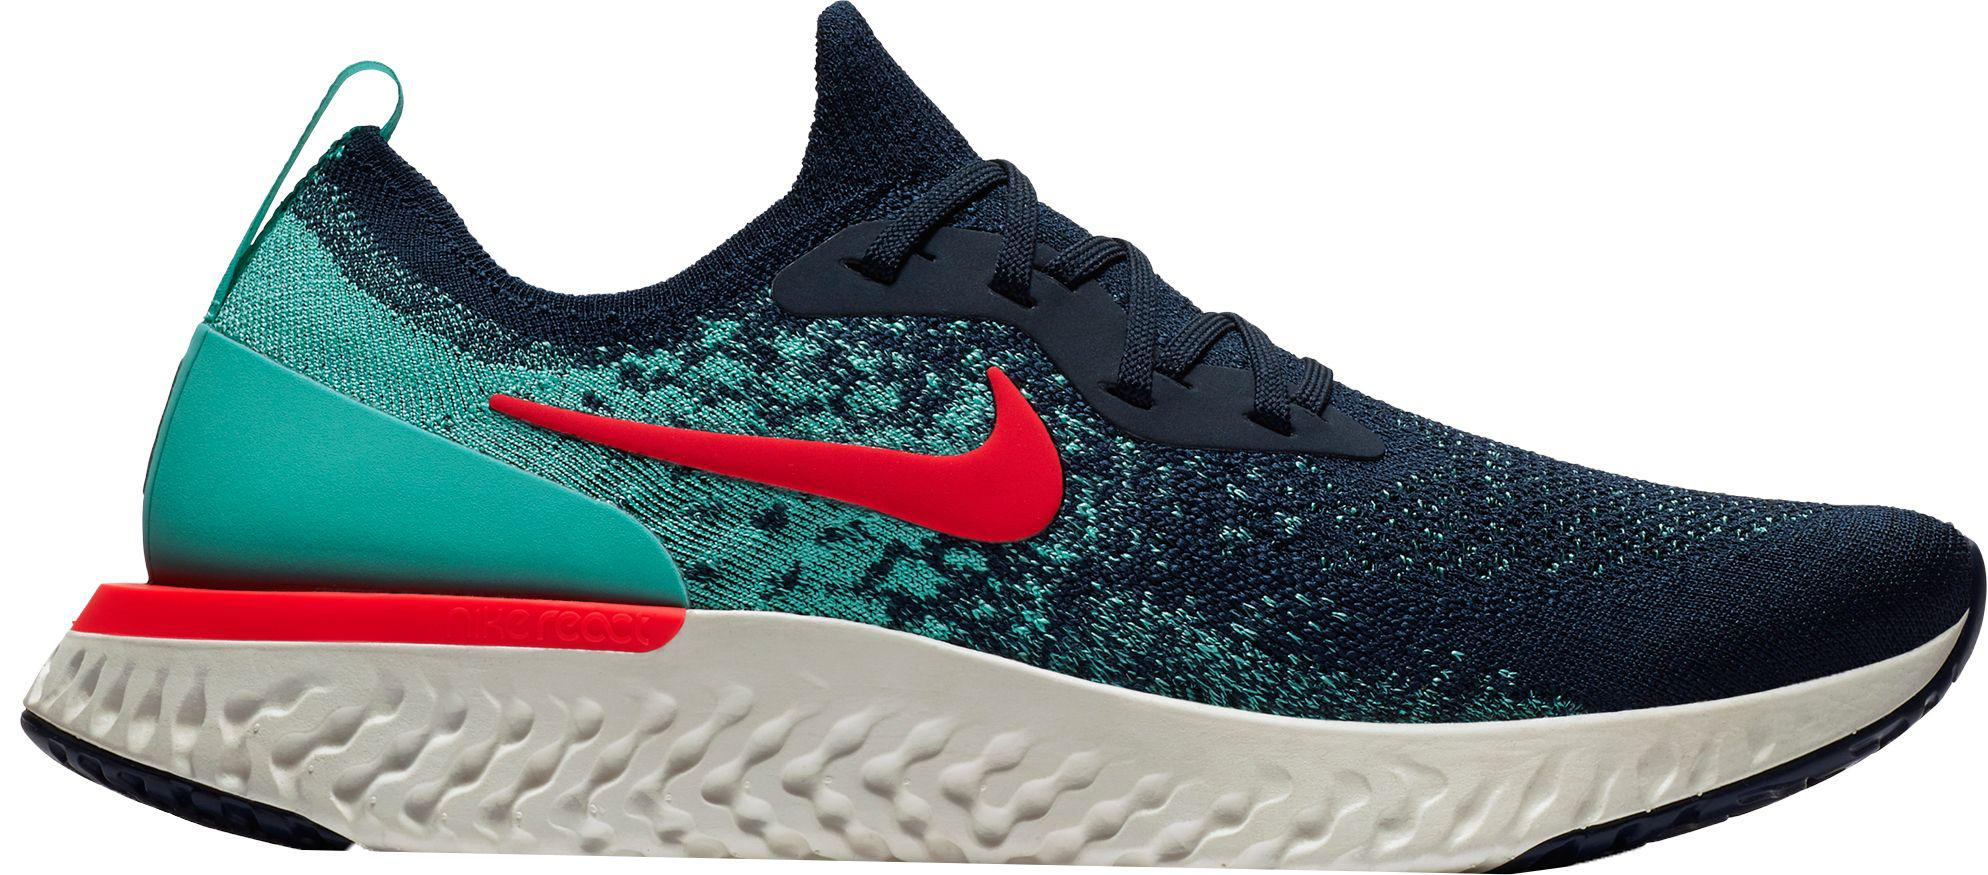 bdf781592fb Lyst - Nike Epic React Flyknit Running Shoes in Blue for Men